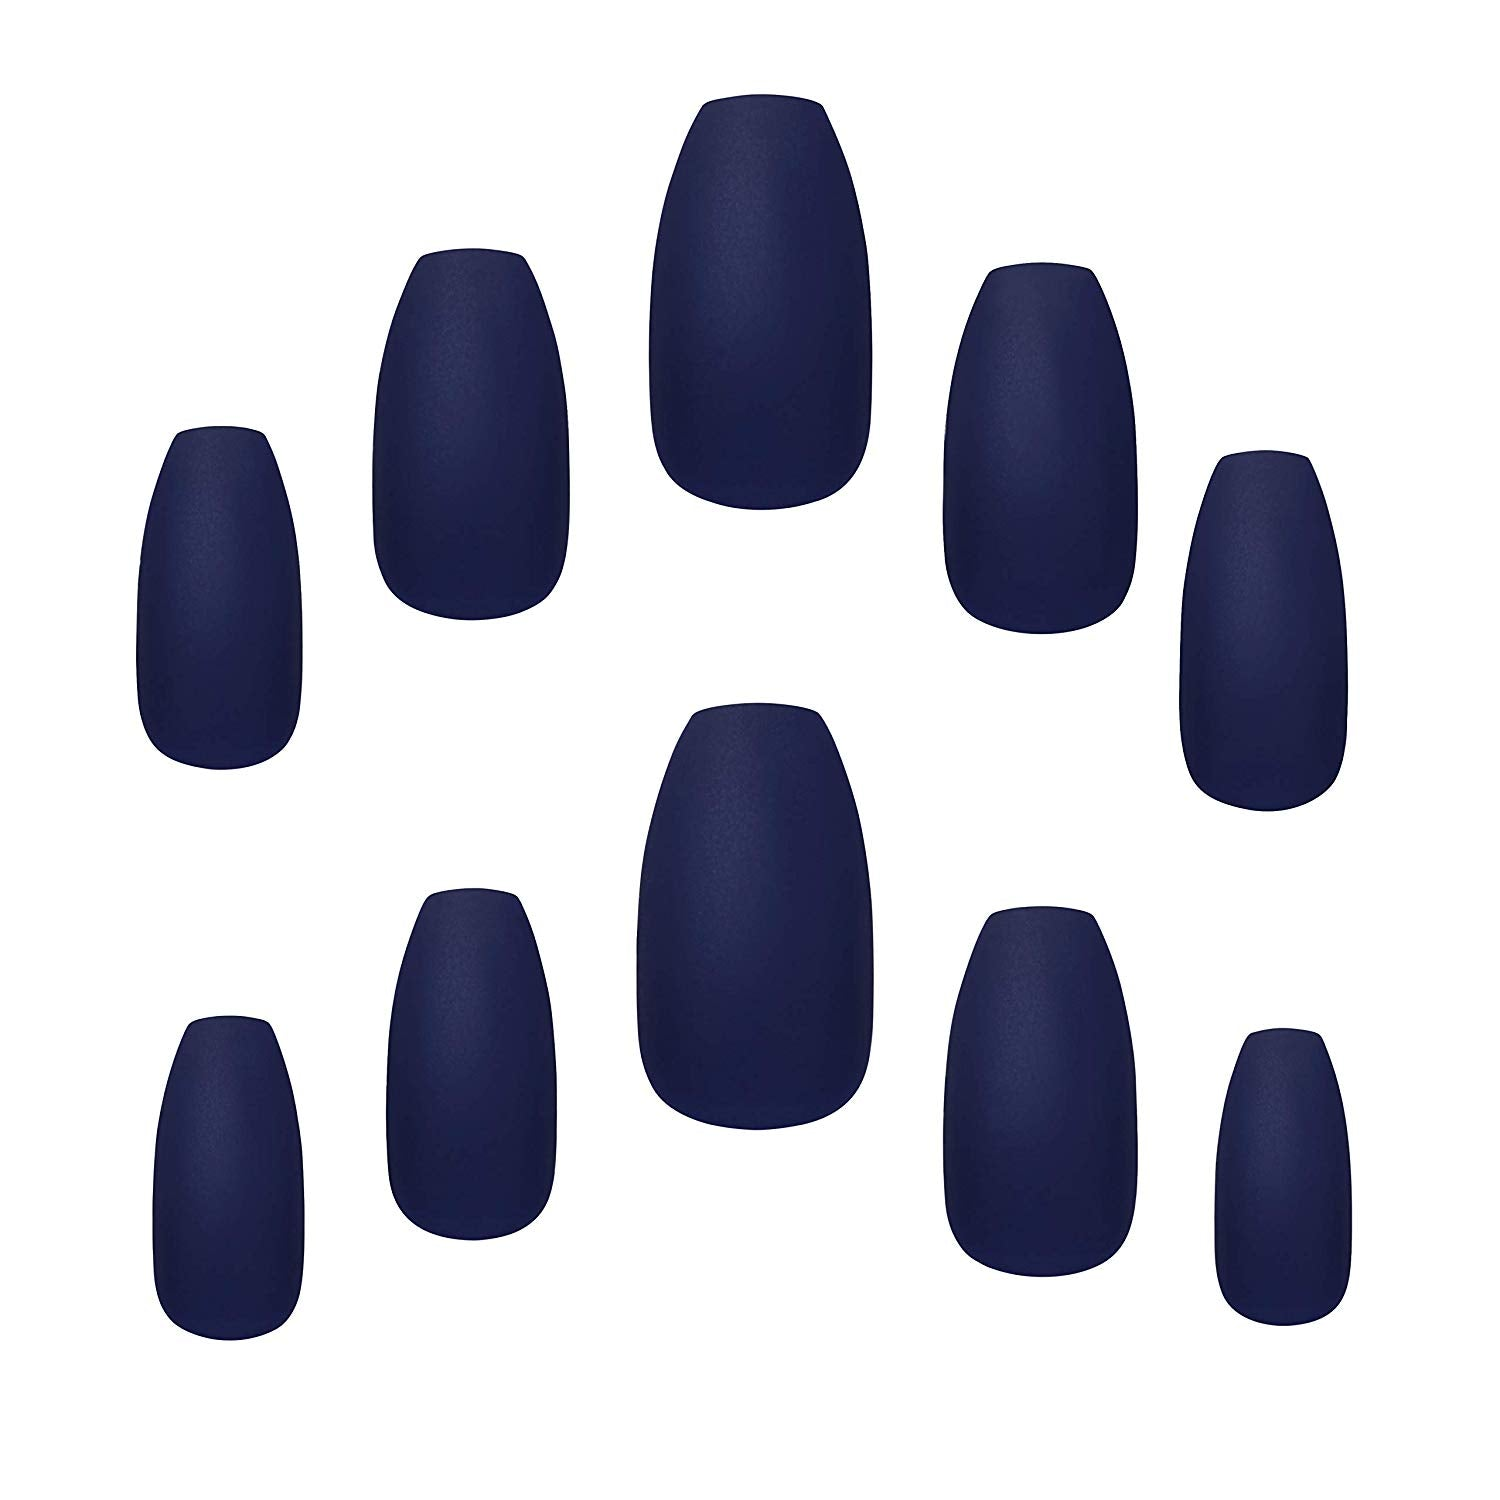 Christmas False Nails Uk: Elegant Touch Queen Of The Night False Nail